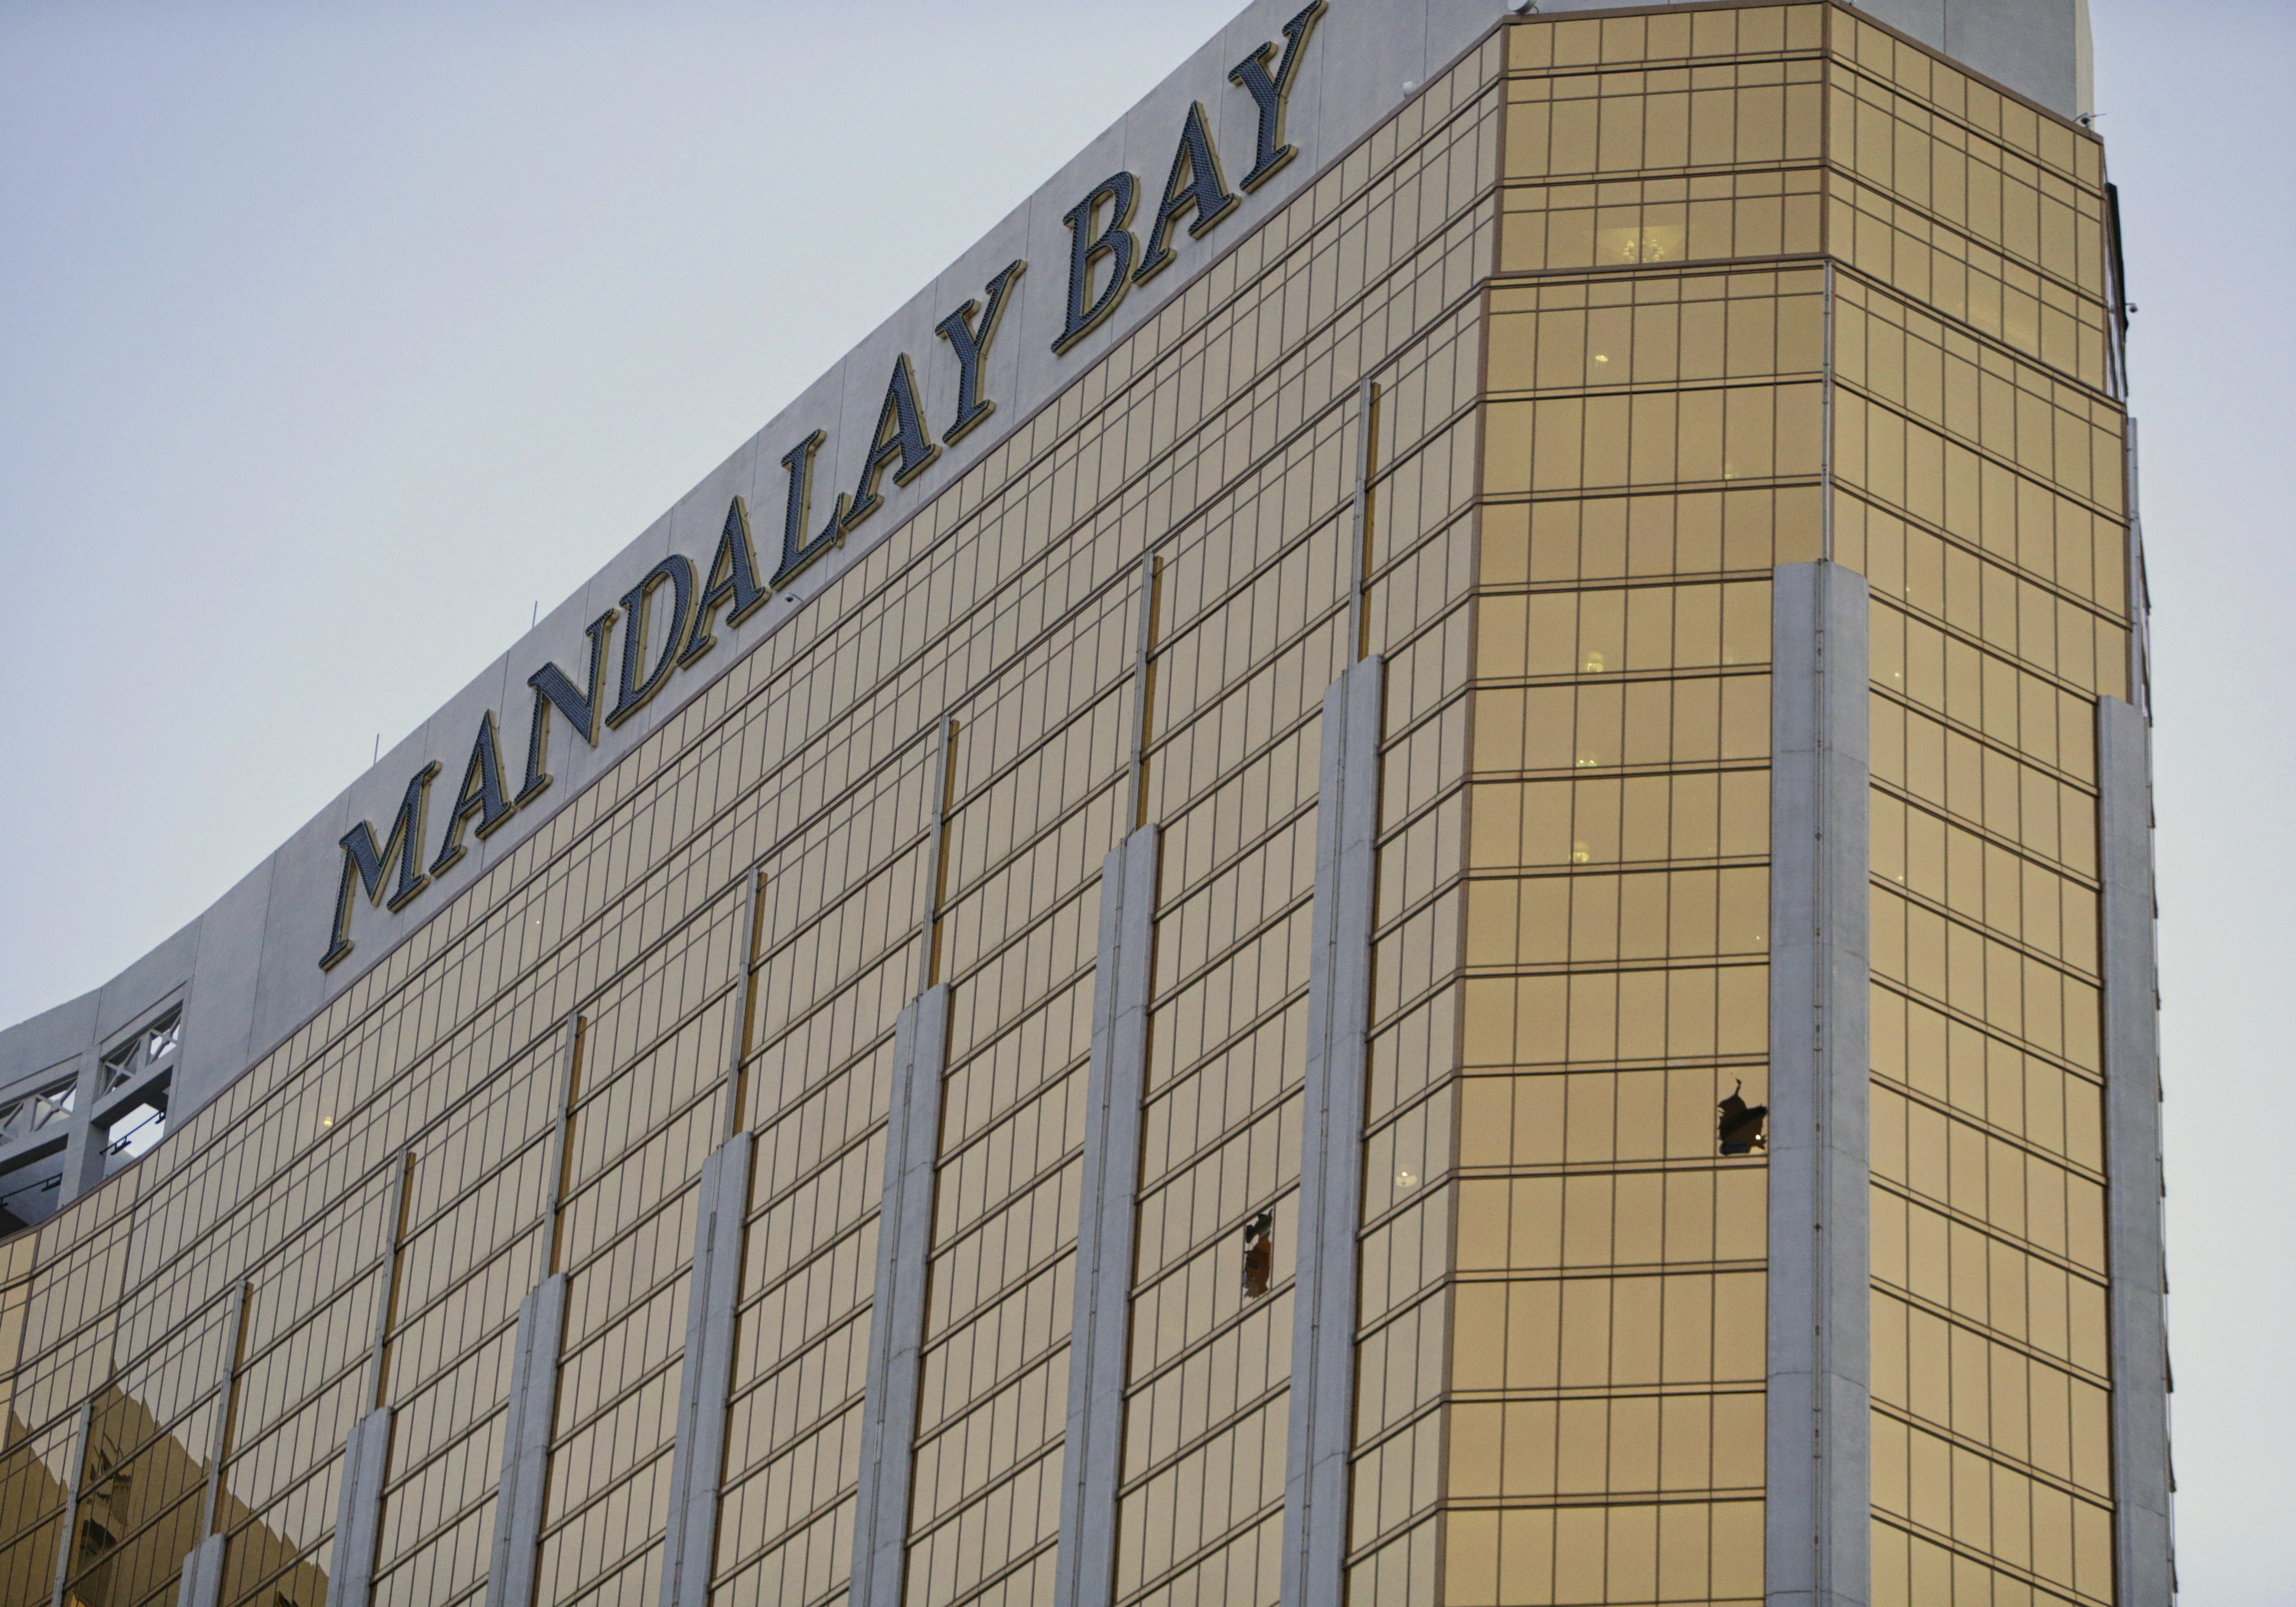 NEWS: OCT 02 Las Vegas Mass Shooting